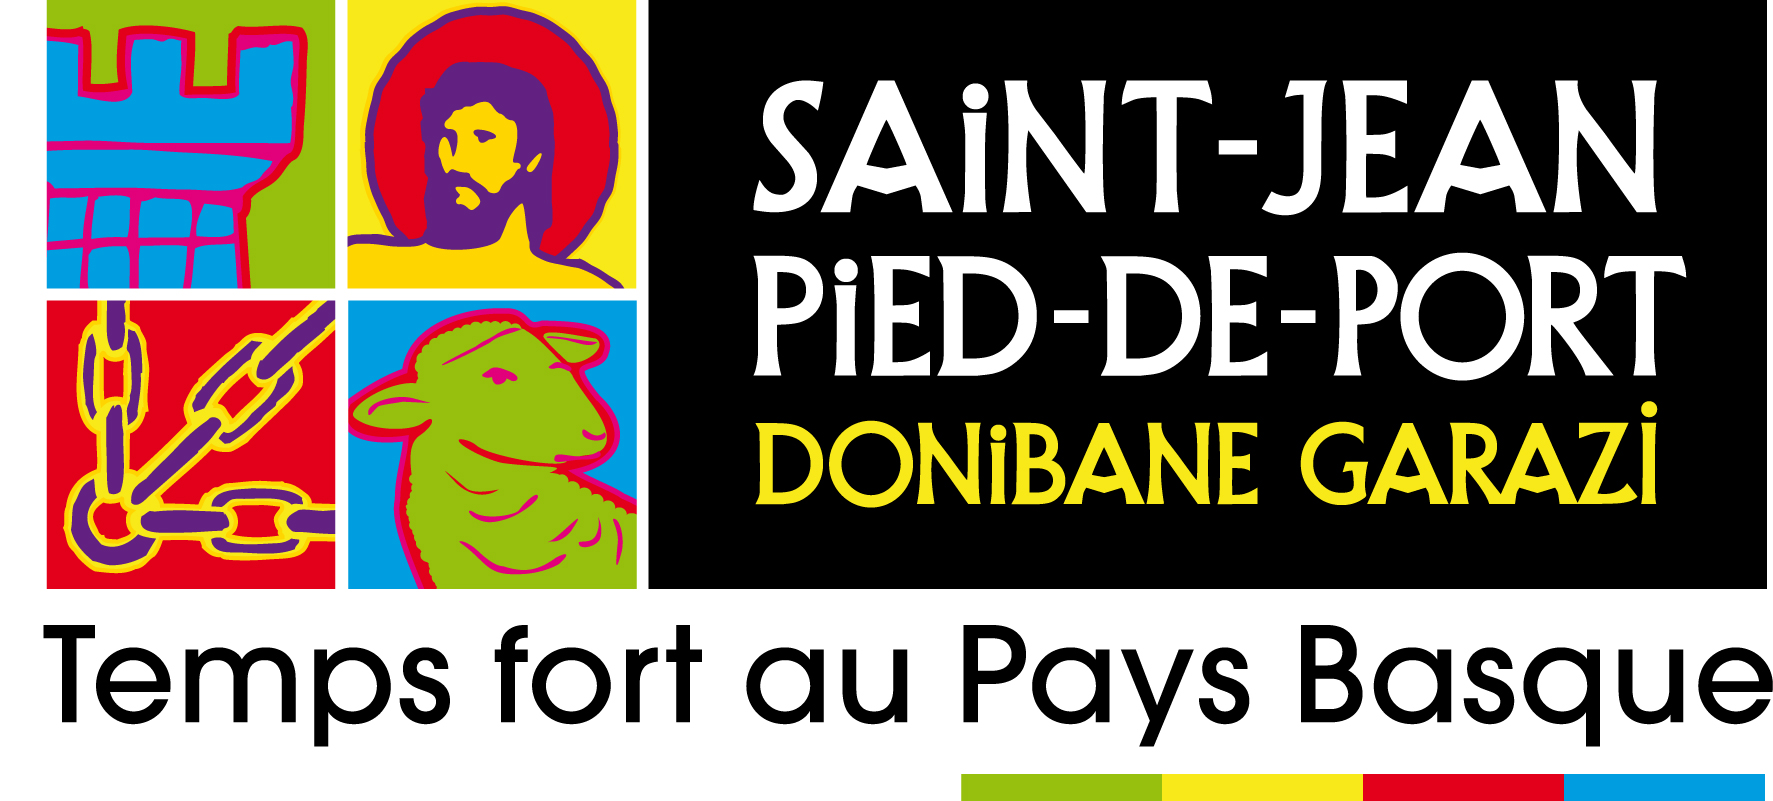 Saint jean pied de port donibane garazi le site - Office de tourisme de saint jean pied de port ...